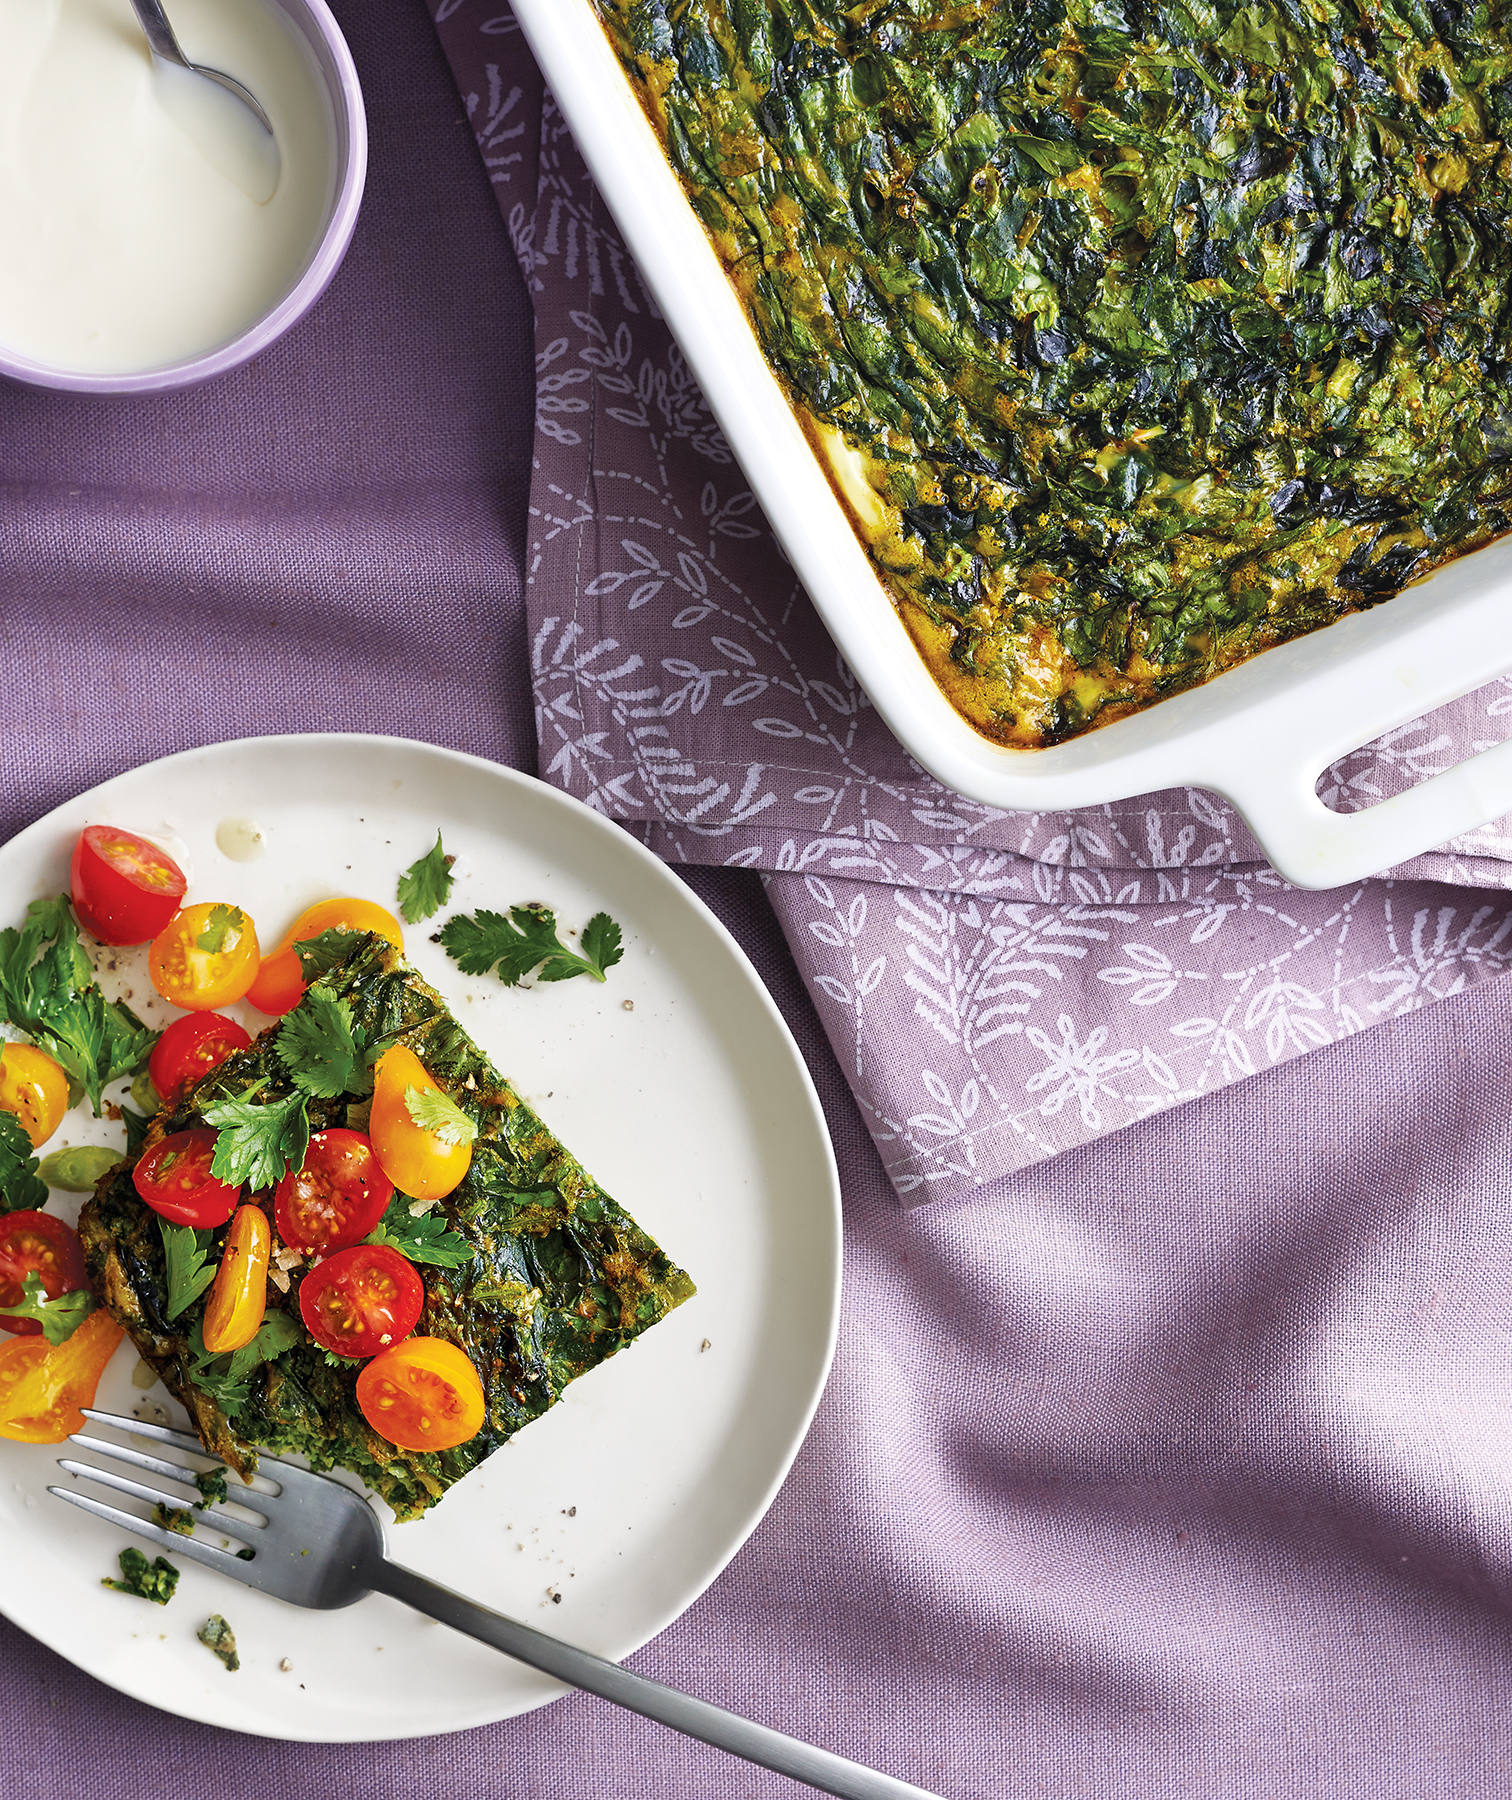 Chard & Herb Frittata With Cherry Tomatoes